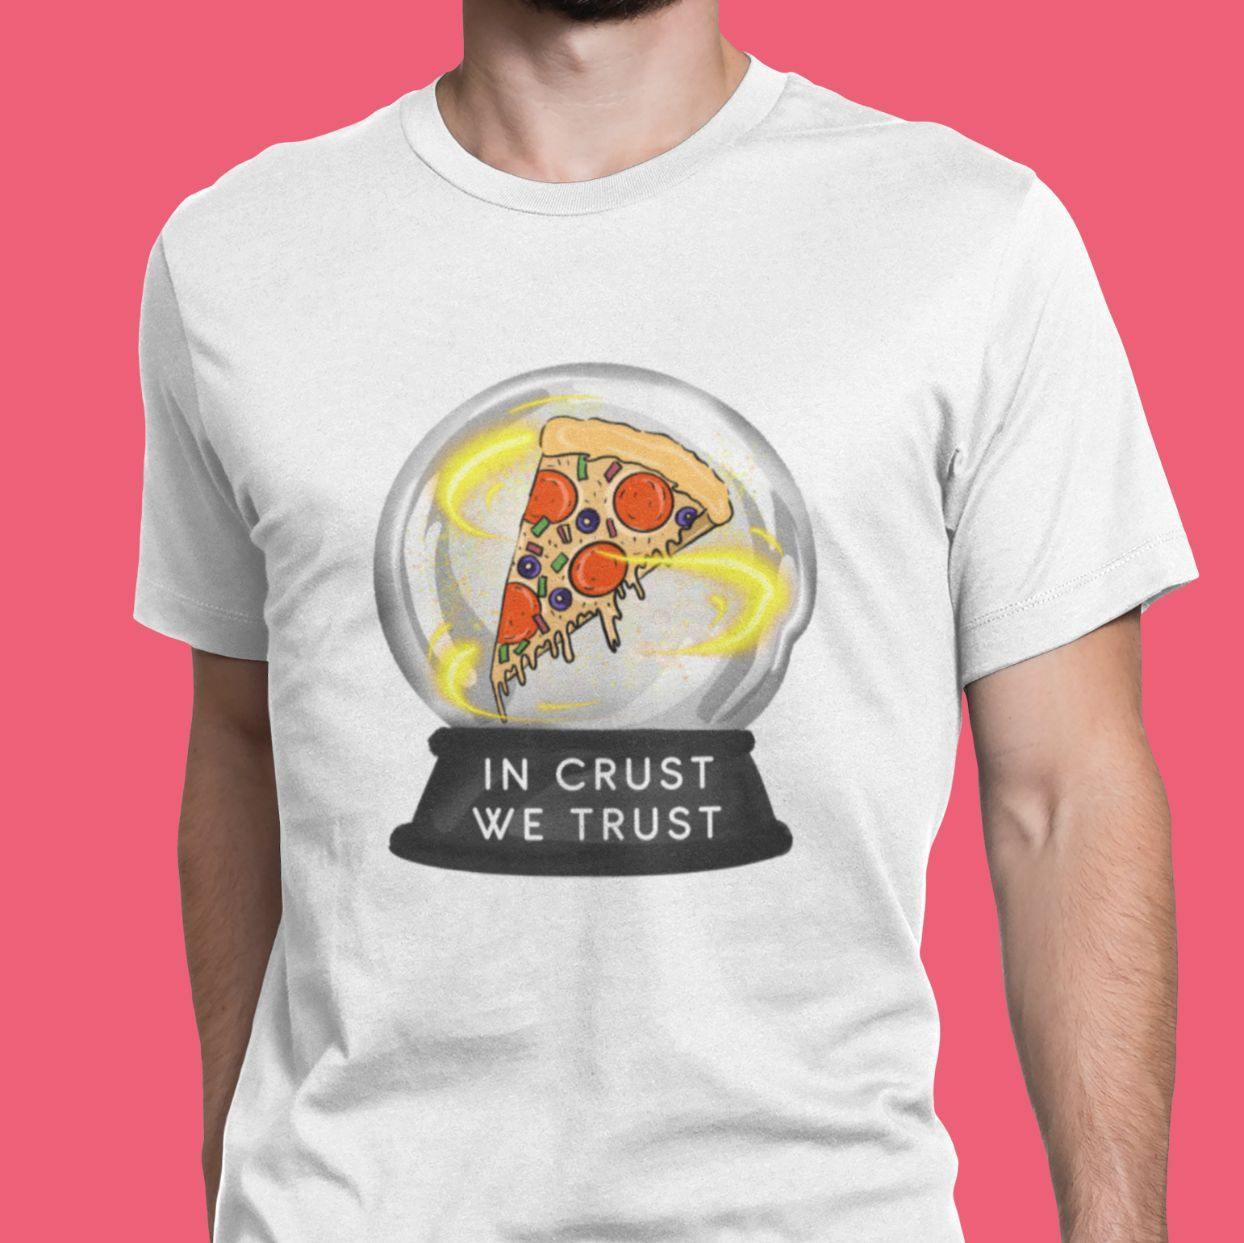 In Crust We Trust - Men's Tshirt - Daily Suvichar Store